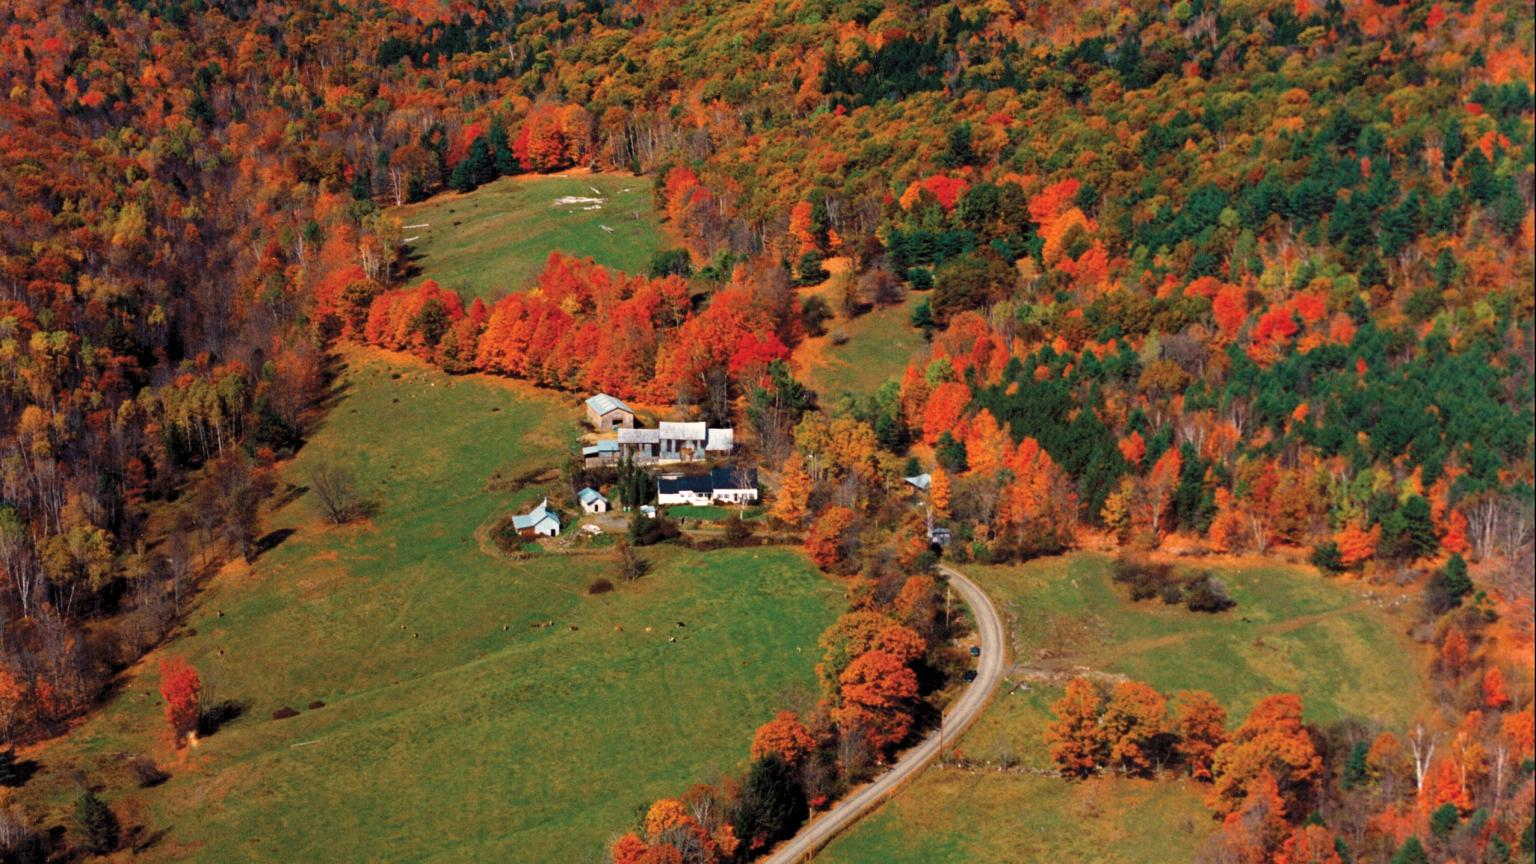 Fall foliage in Vermont, Vermont Farm